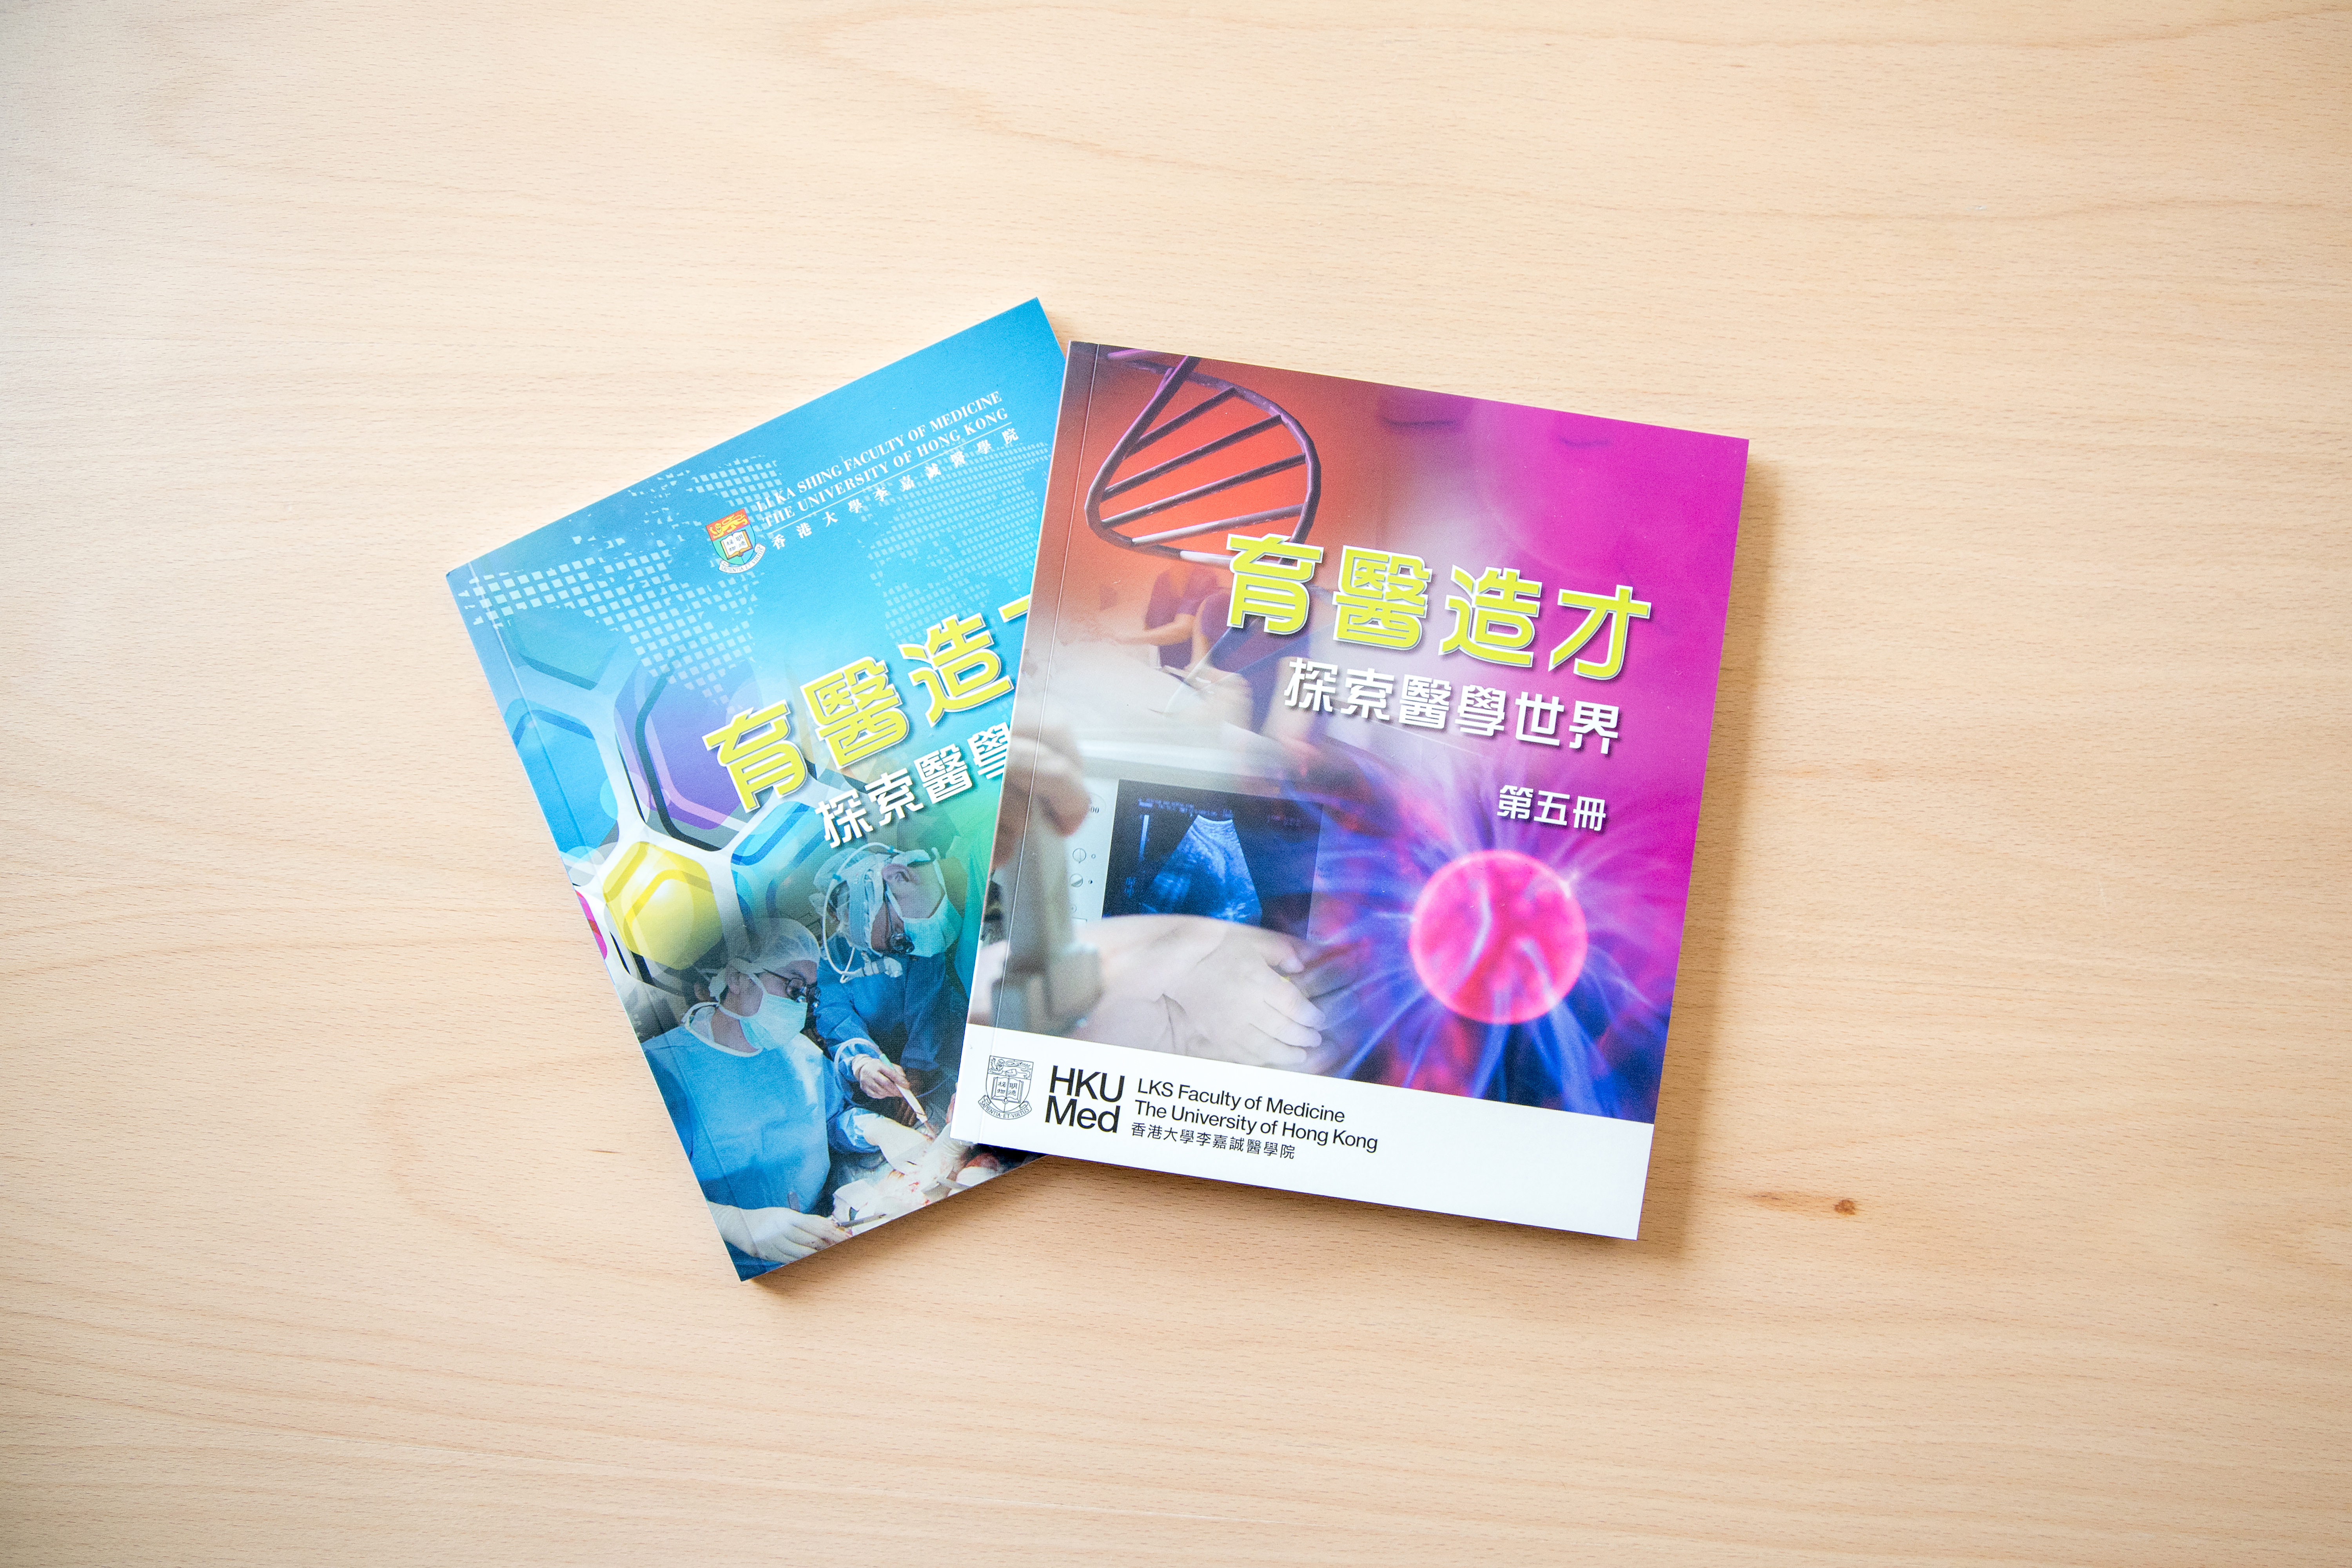 Explore the World of Medicine - Publications by HKUMed (Book in Chinese)